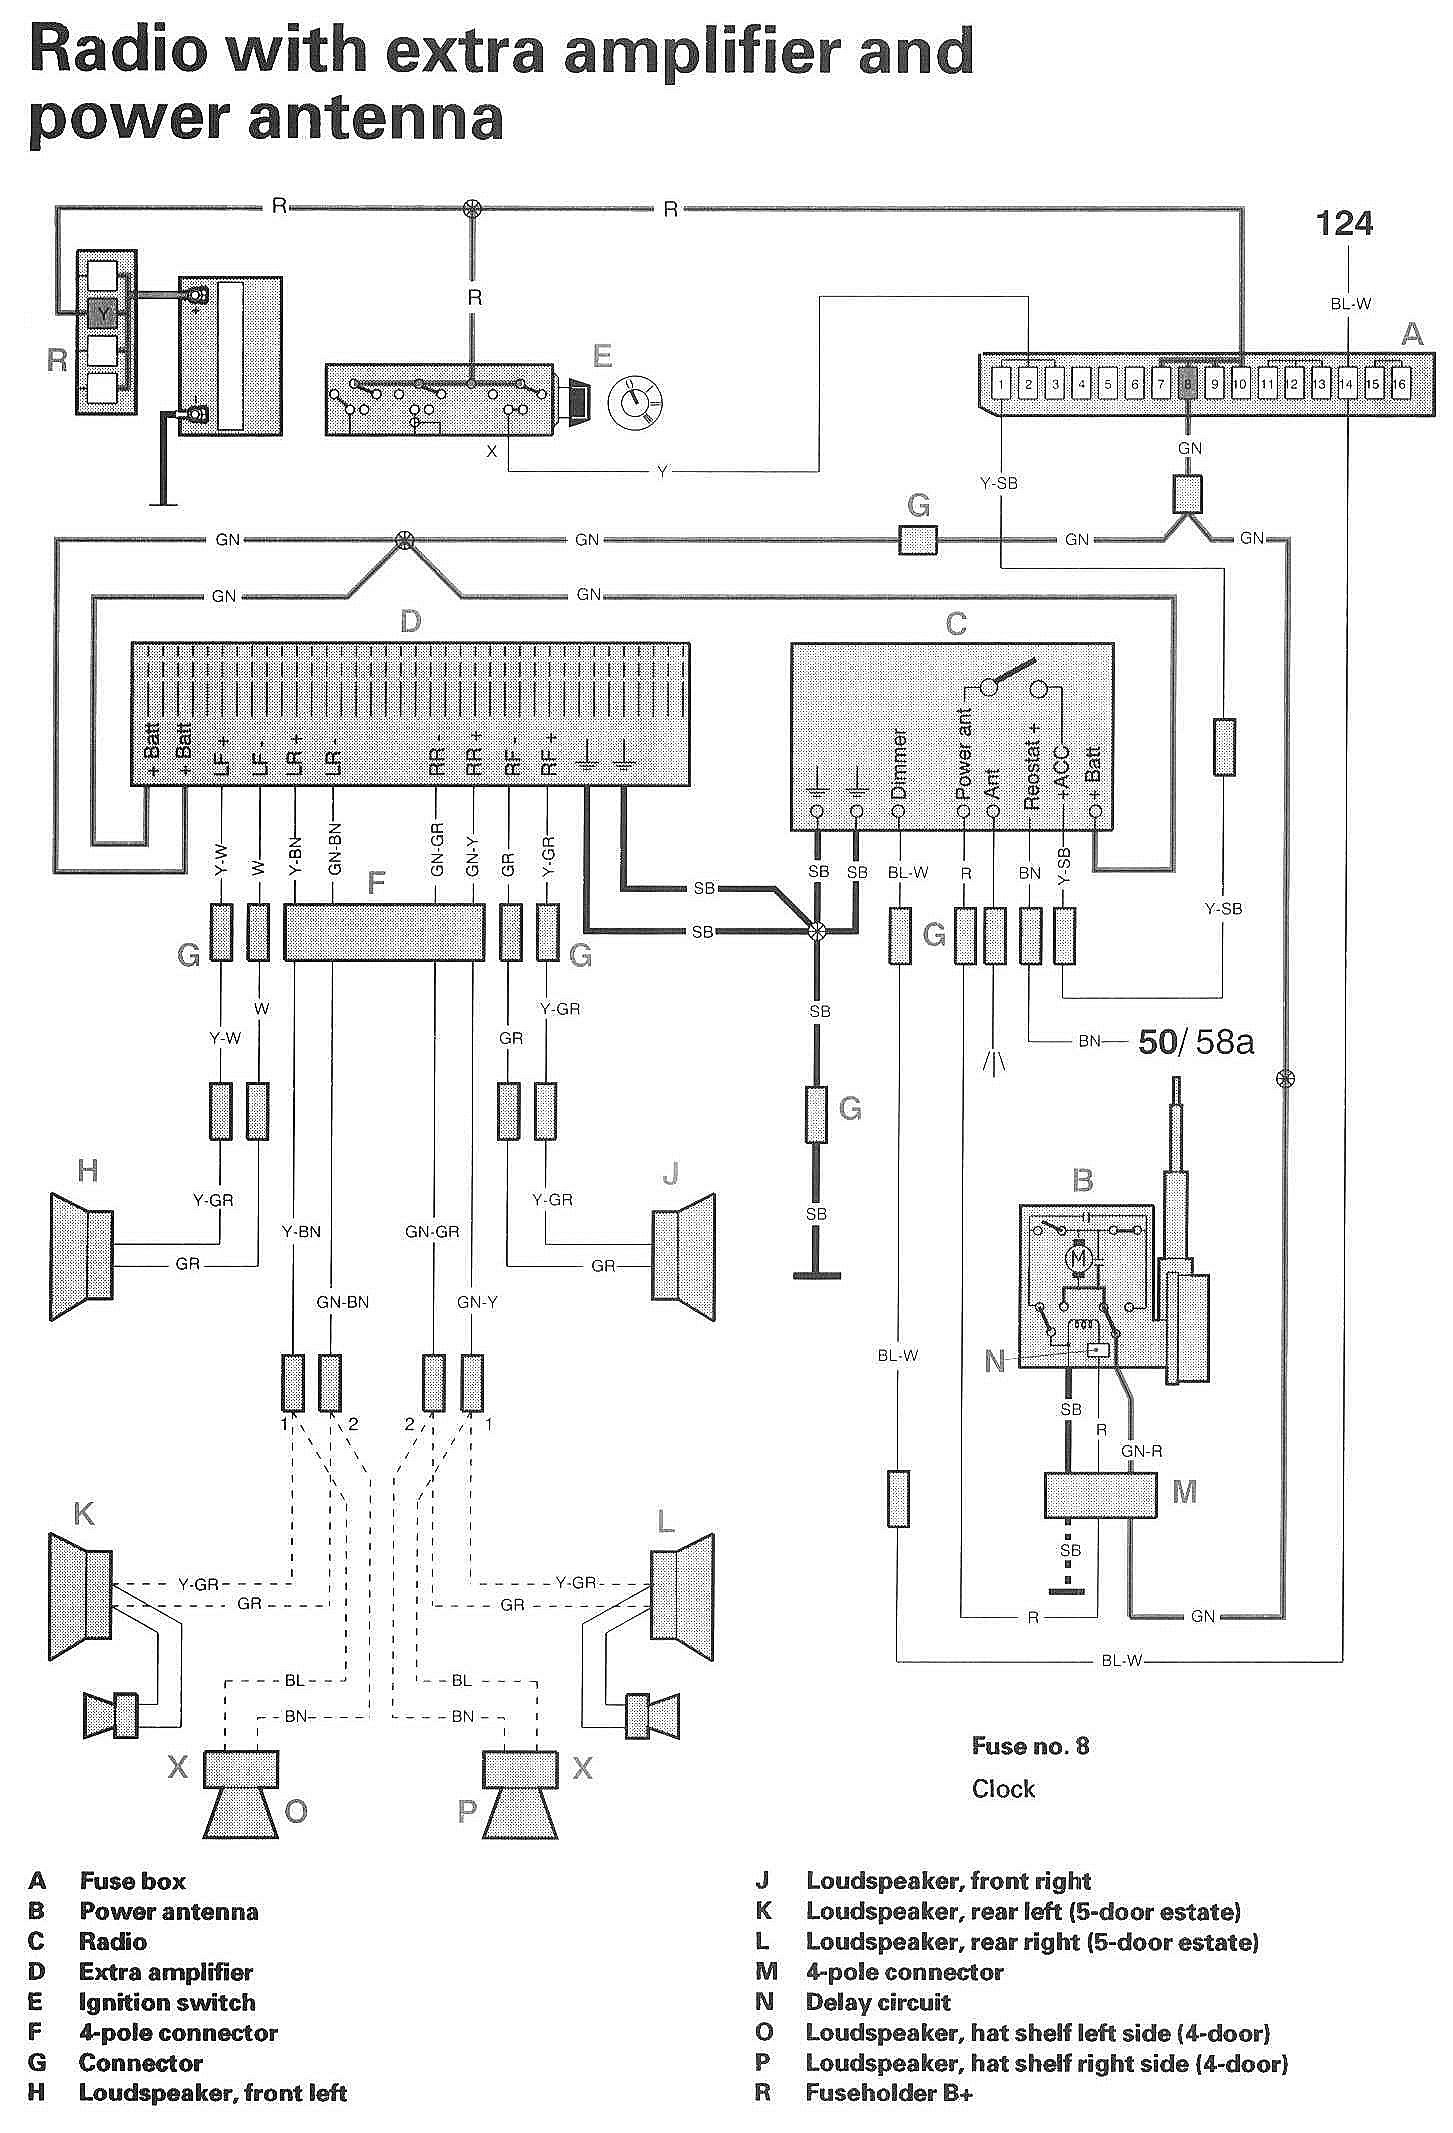 Volvo 850 Wiring Harness Diagram Wiring Diagram Corsa A Corsa A Pasticceriagele It